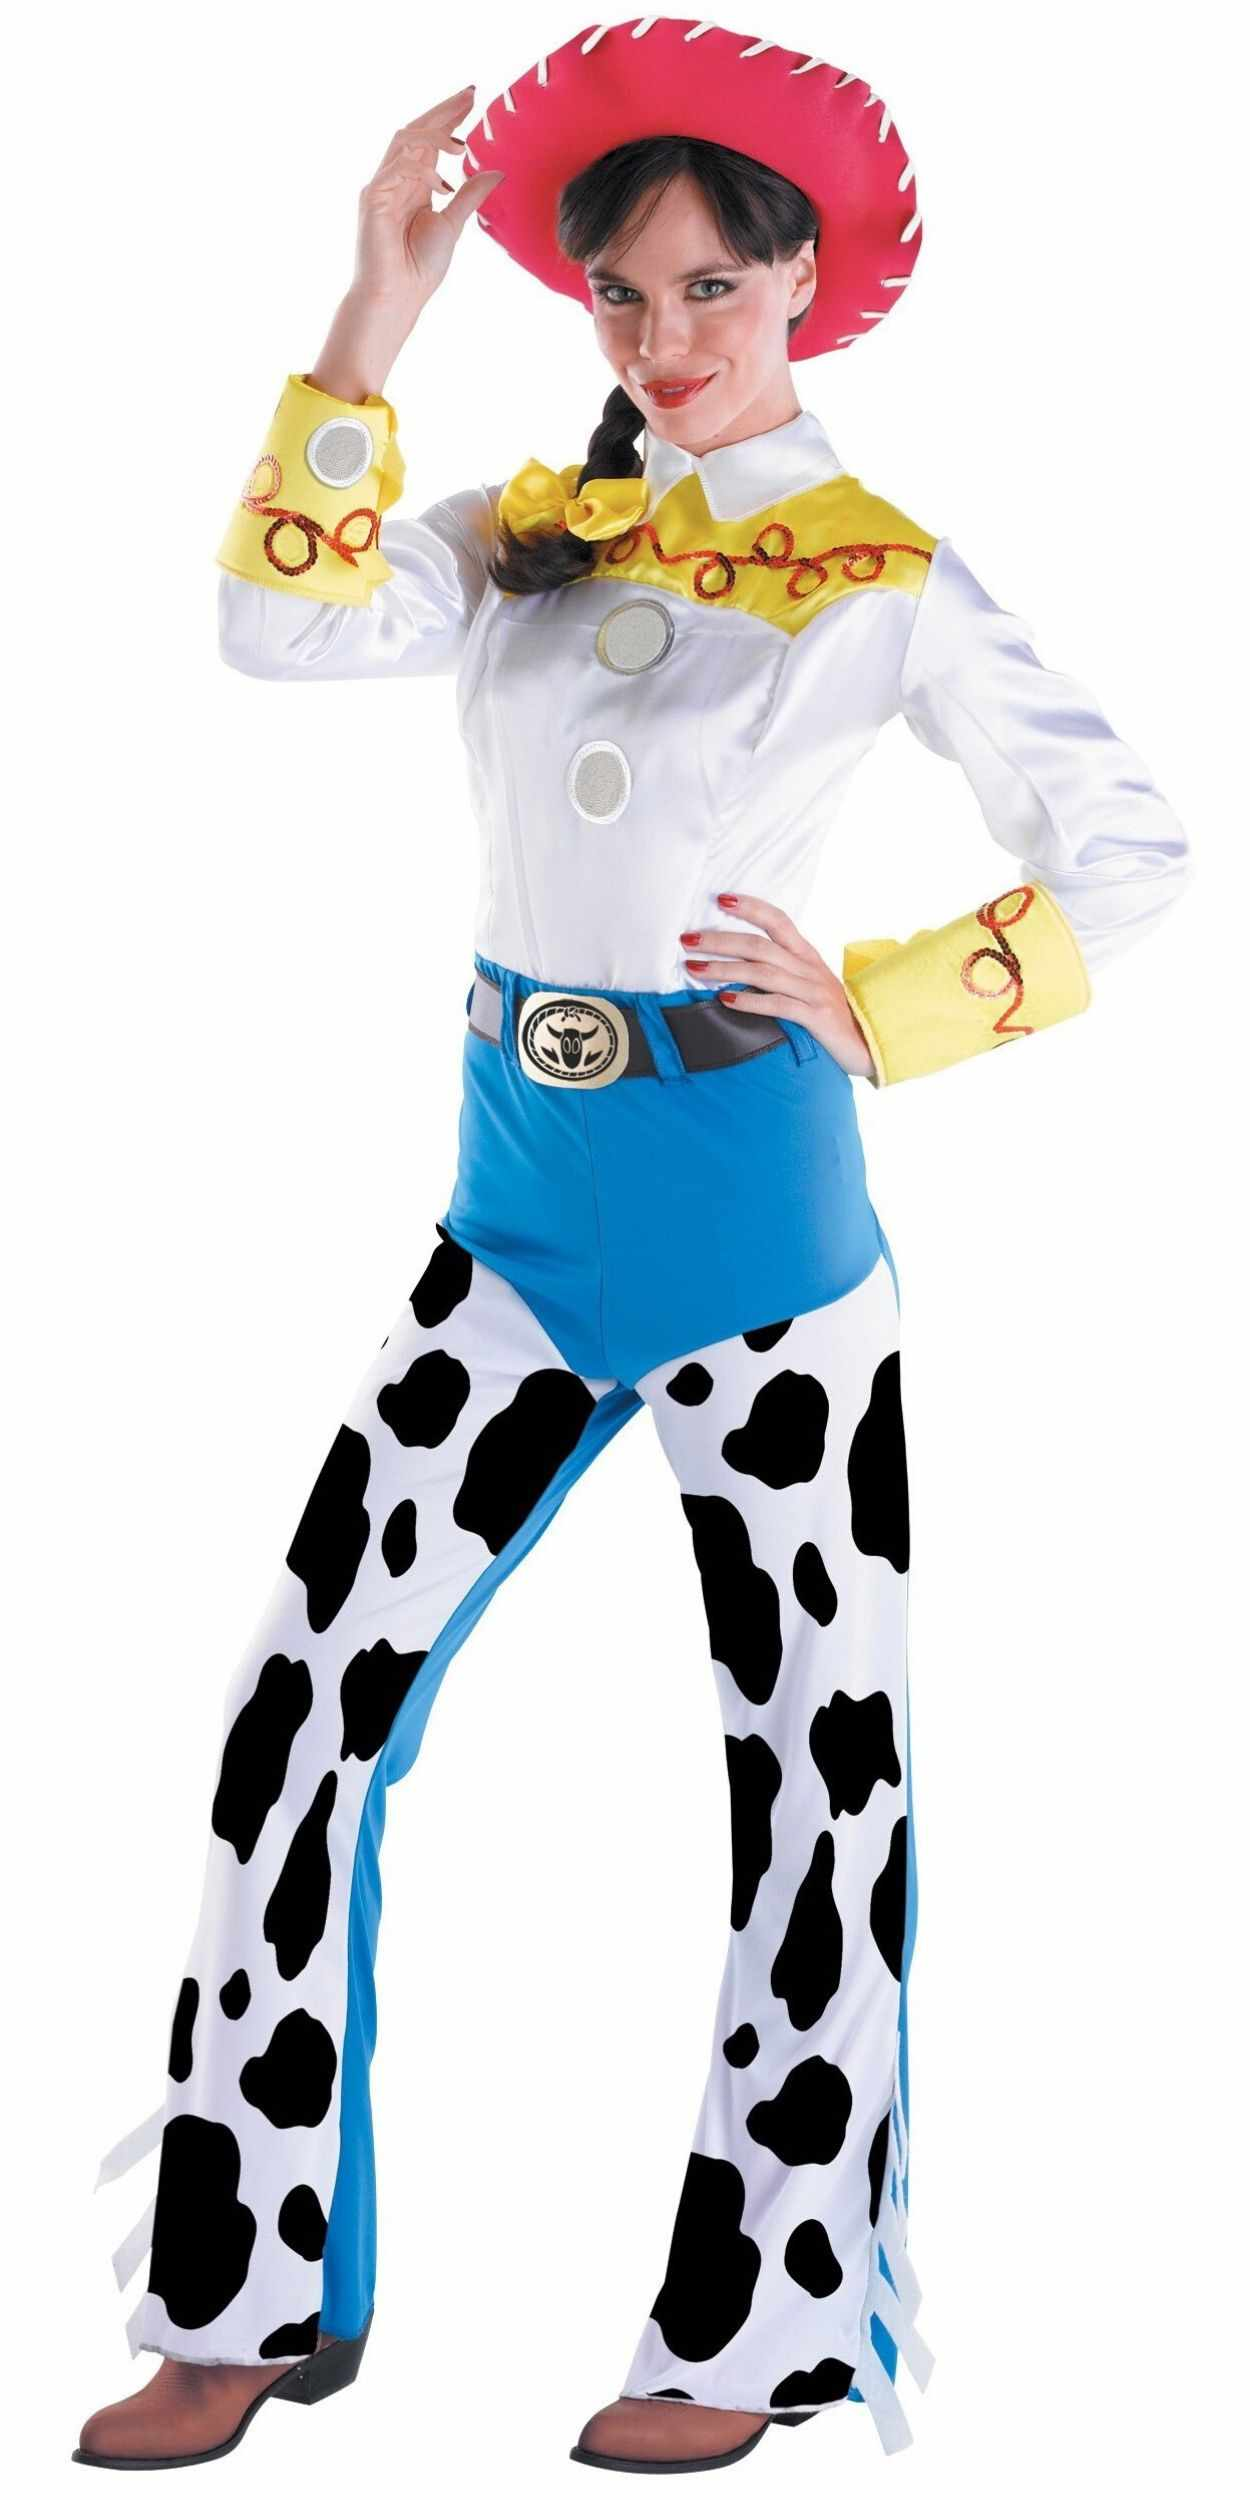 Woman in Jessie Party Costume